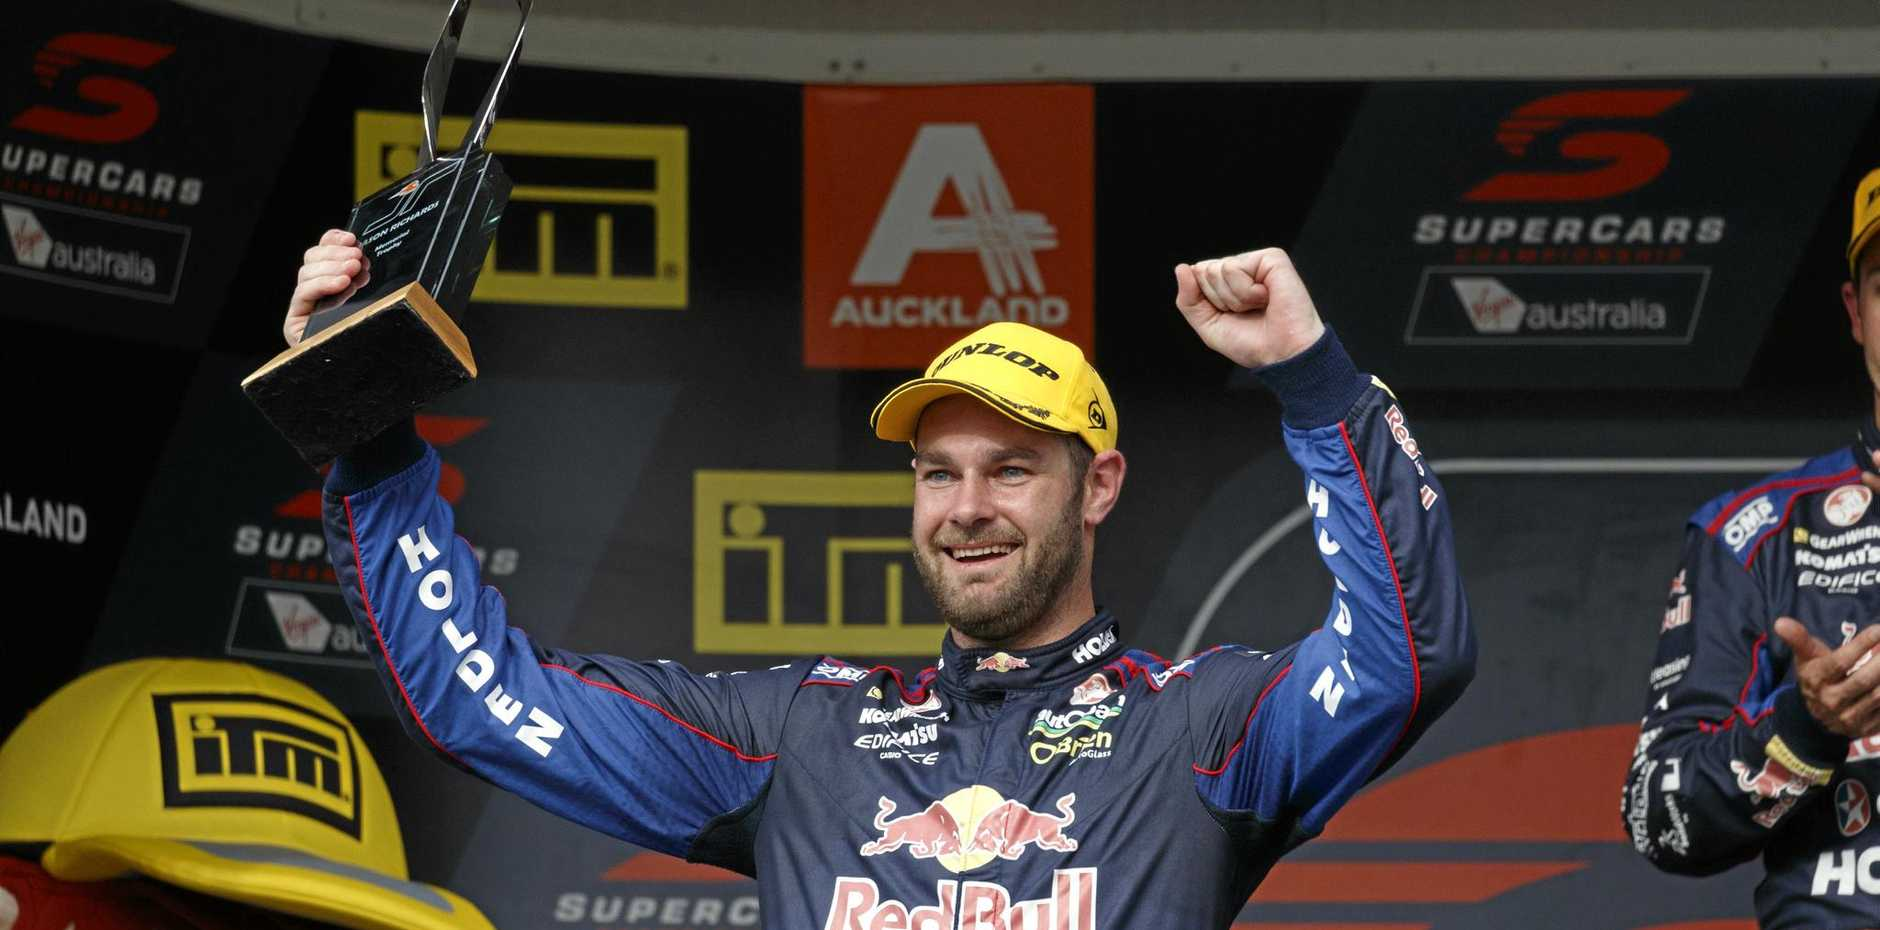 Shane van Gisbergen of Red Bull Racing Australia celebrates at the Auckland SuperSprint at Pukokohe.